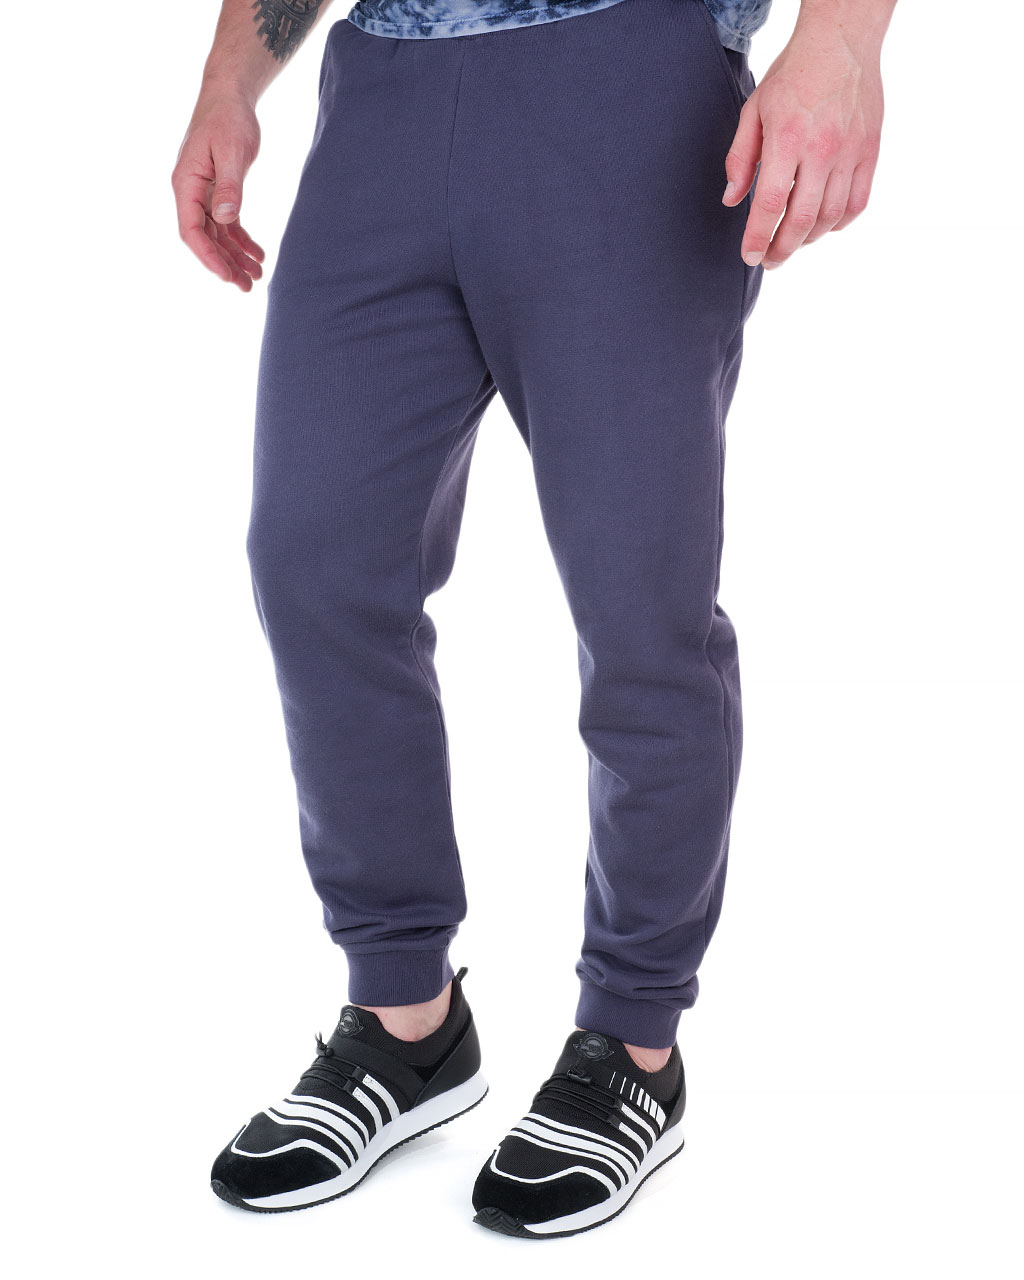 Men's trousers 52P00094-1T002297-U290/9 (1)